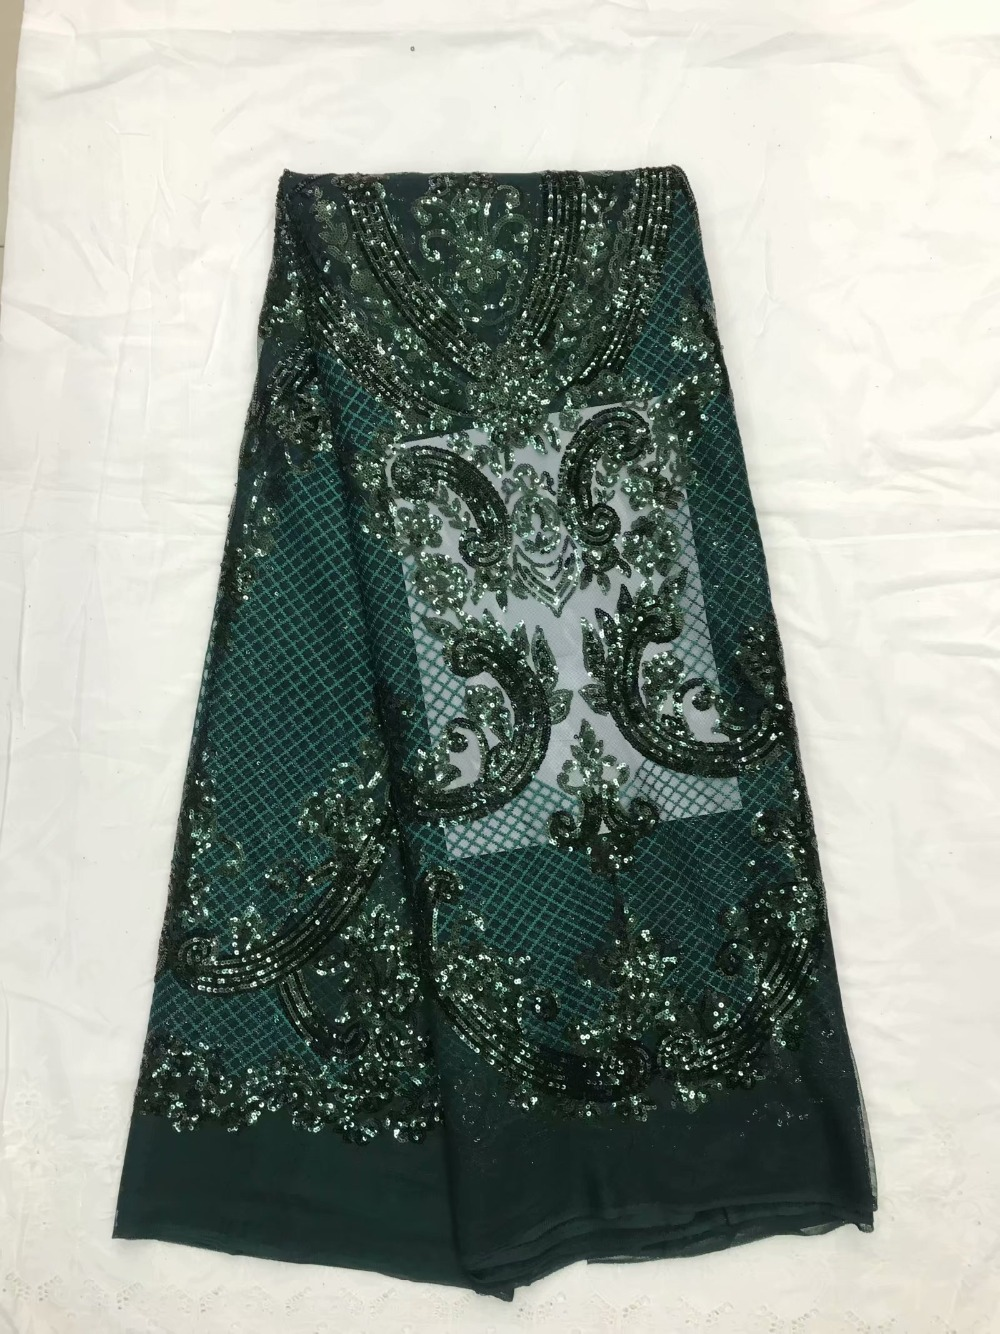 2018 High Quality African Lace Fabric Emerald green French Net Embroidery Sequins Tulle Lace Fabric For